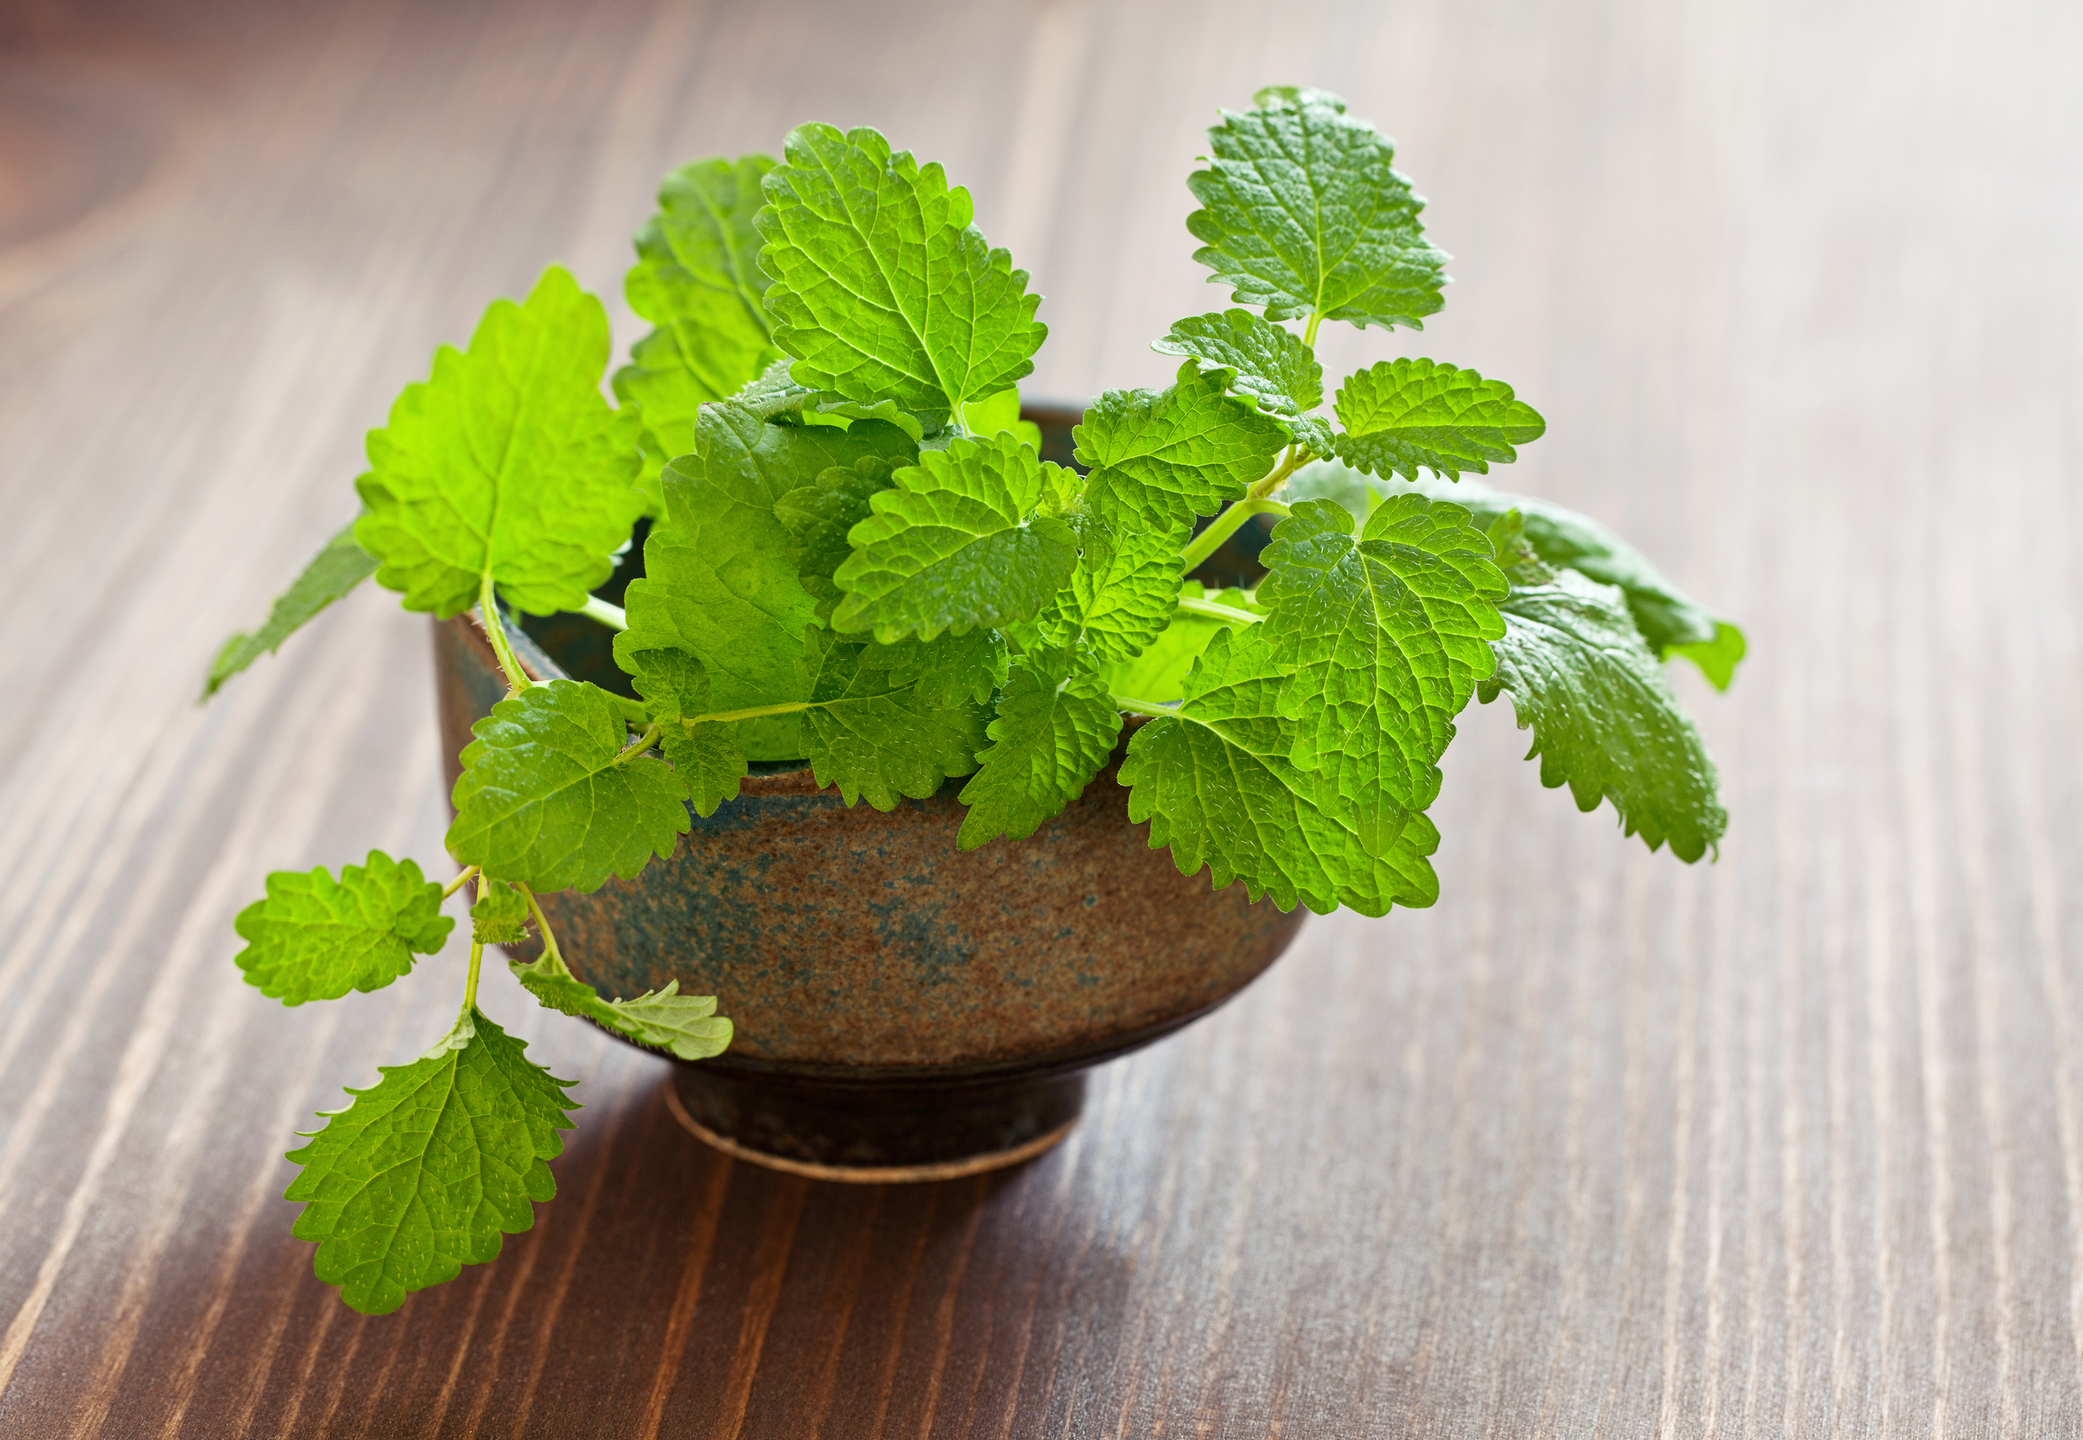 Lemon balm has been used for anxiety and depression, but does it work?